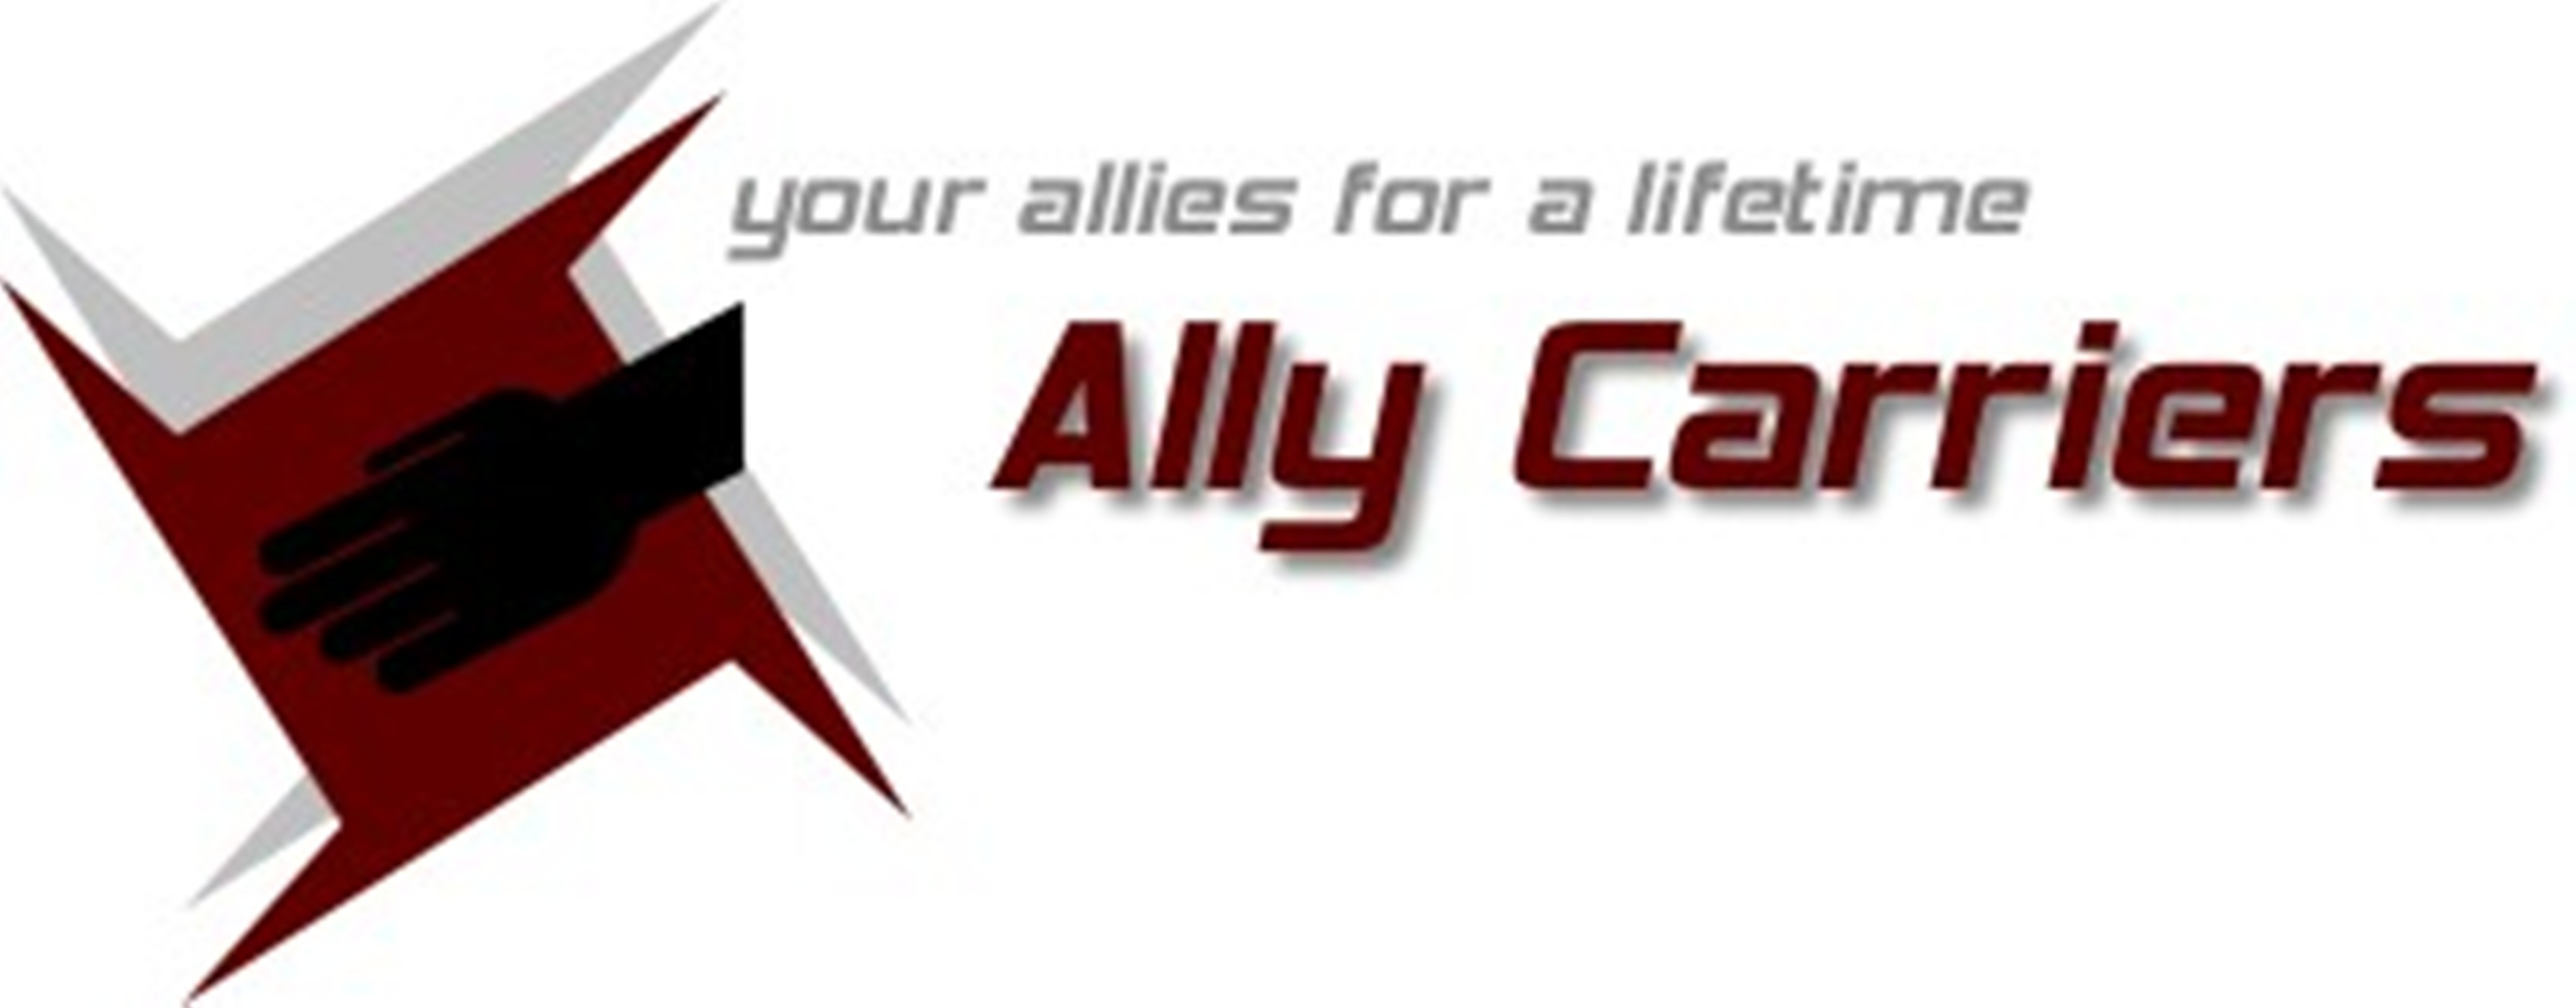 Ally Carriers